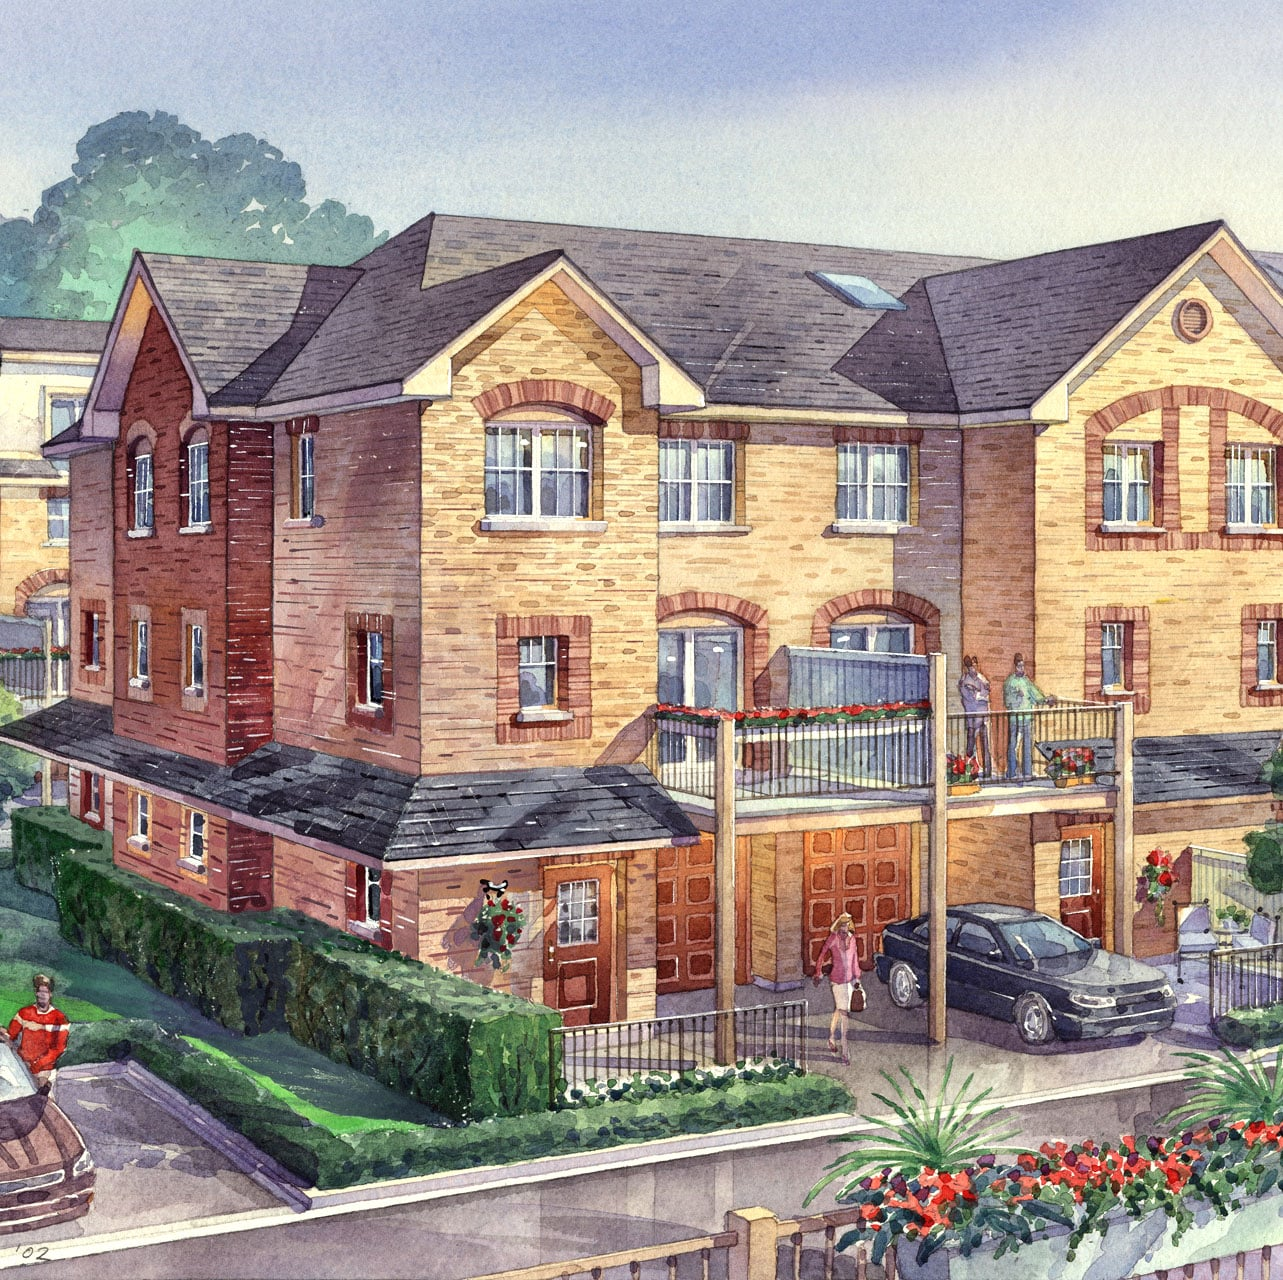 2004: Serenade Townhomes - Pickering, Ontario